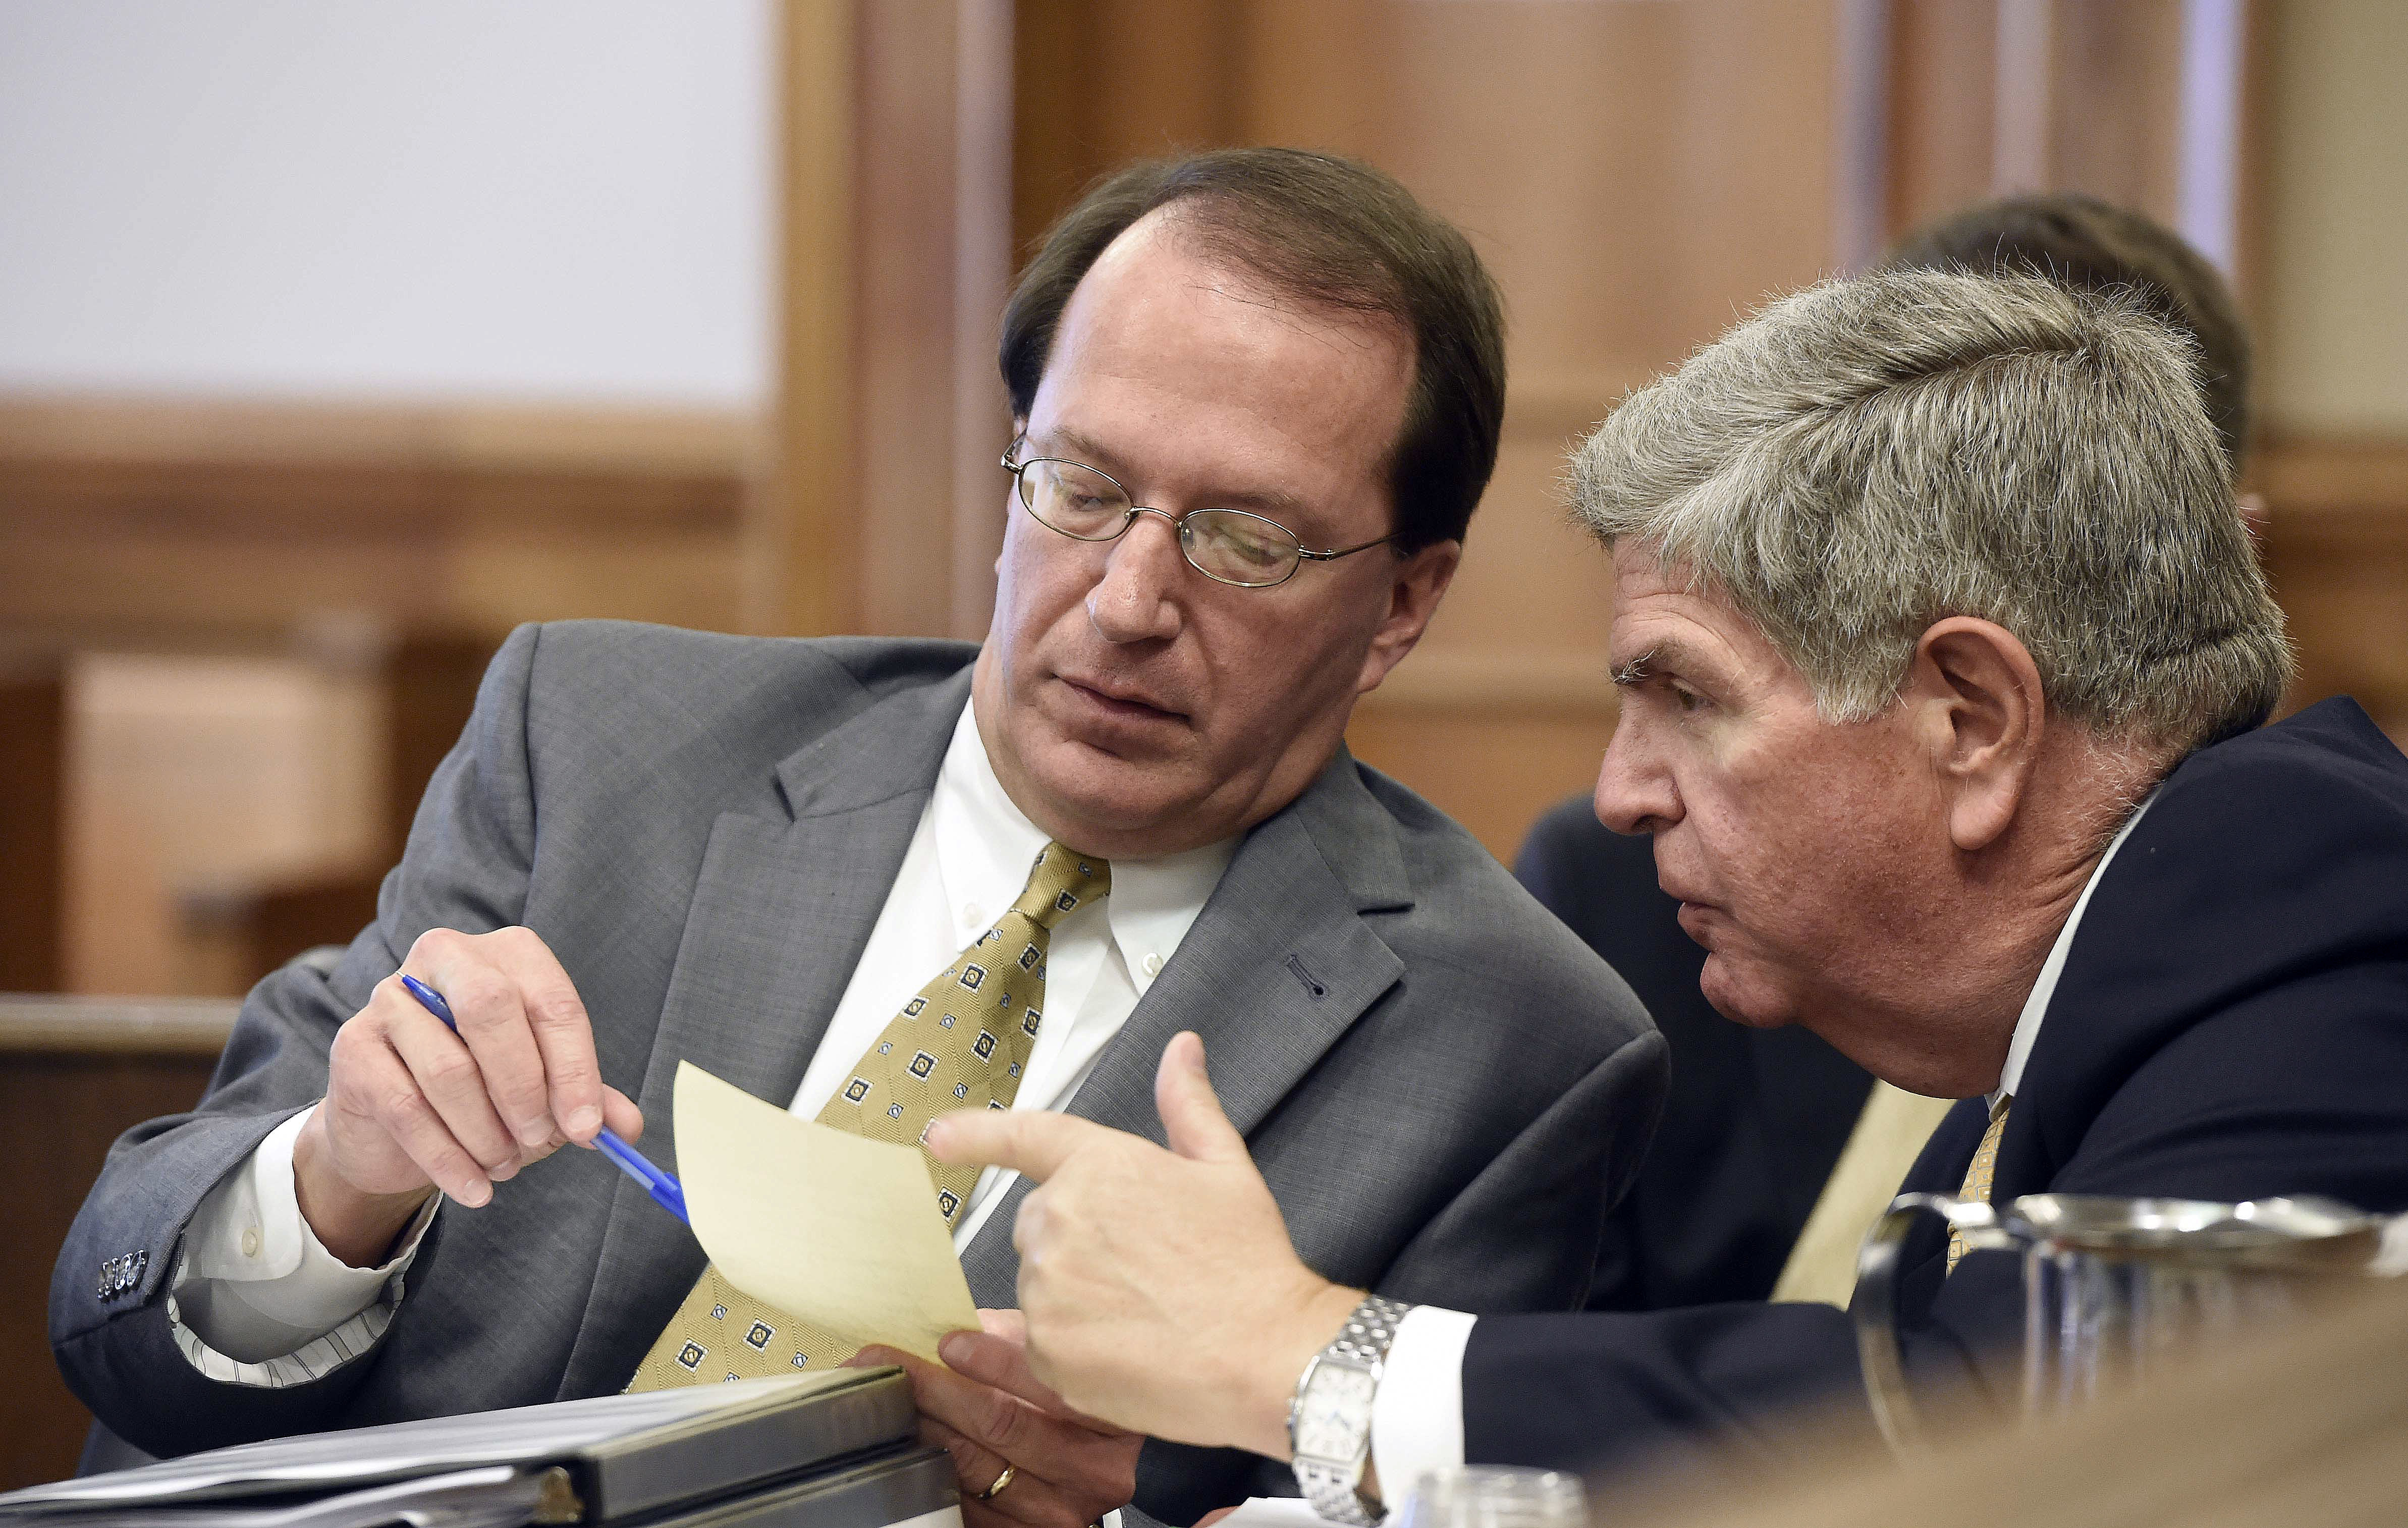 NHL hockey attorneys George Cate, left, and Shepard Goldfein, right, talk in the courtroom for a hearing Wednesday, July 20, 2016, in Nashville, Tenn. David Freeman, an investor in the Nashville Predators' NHL hockey ownership group, is trying to continue